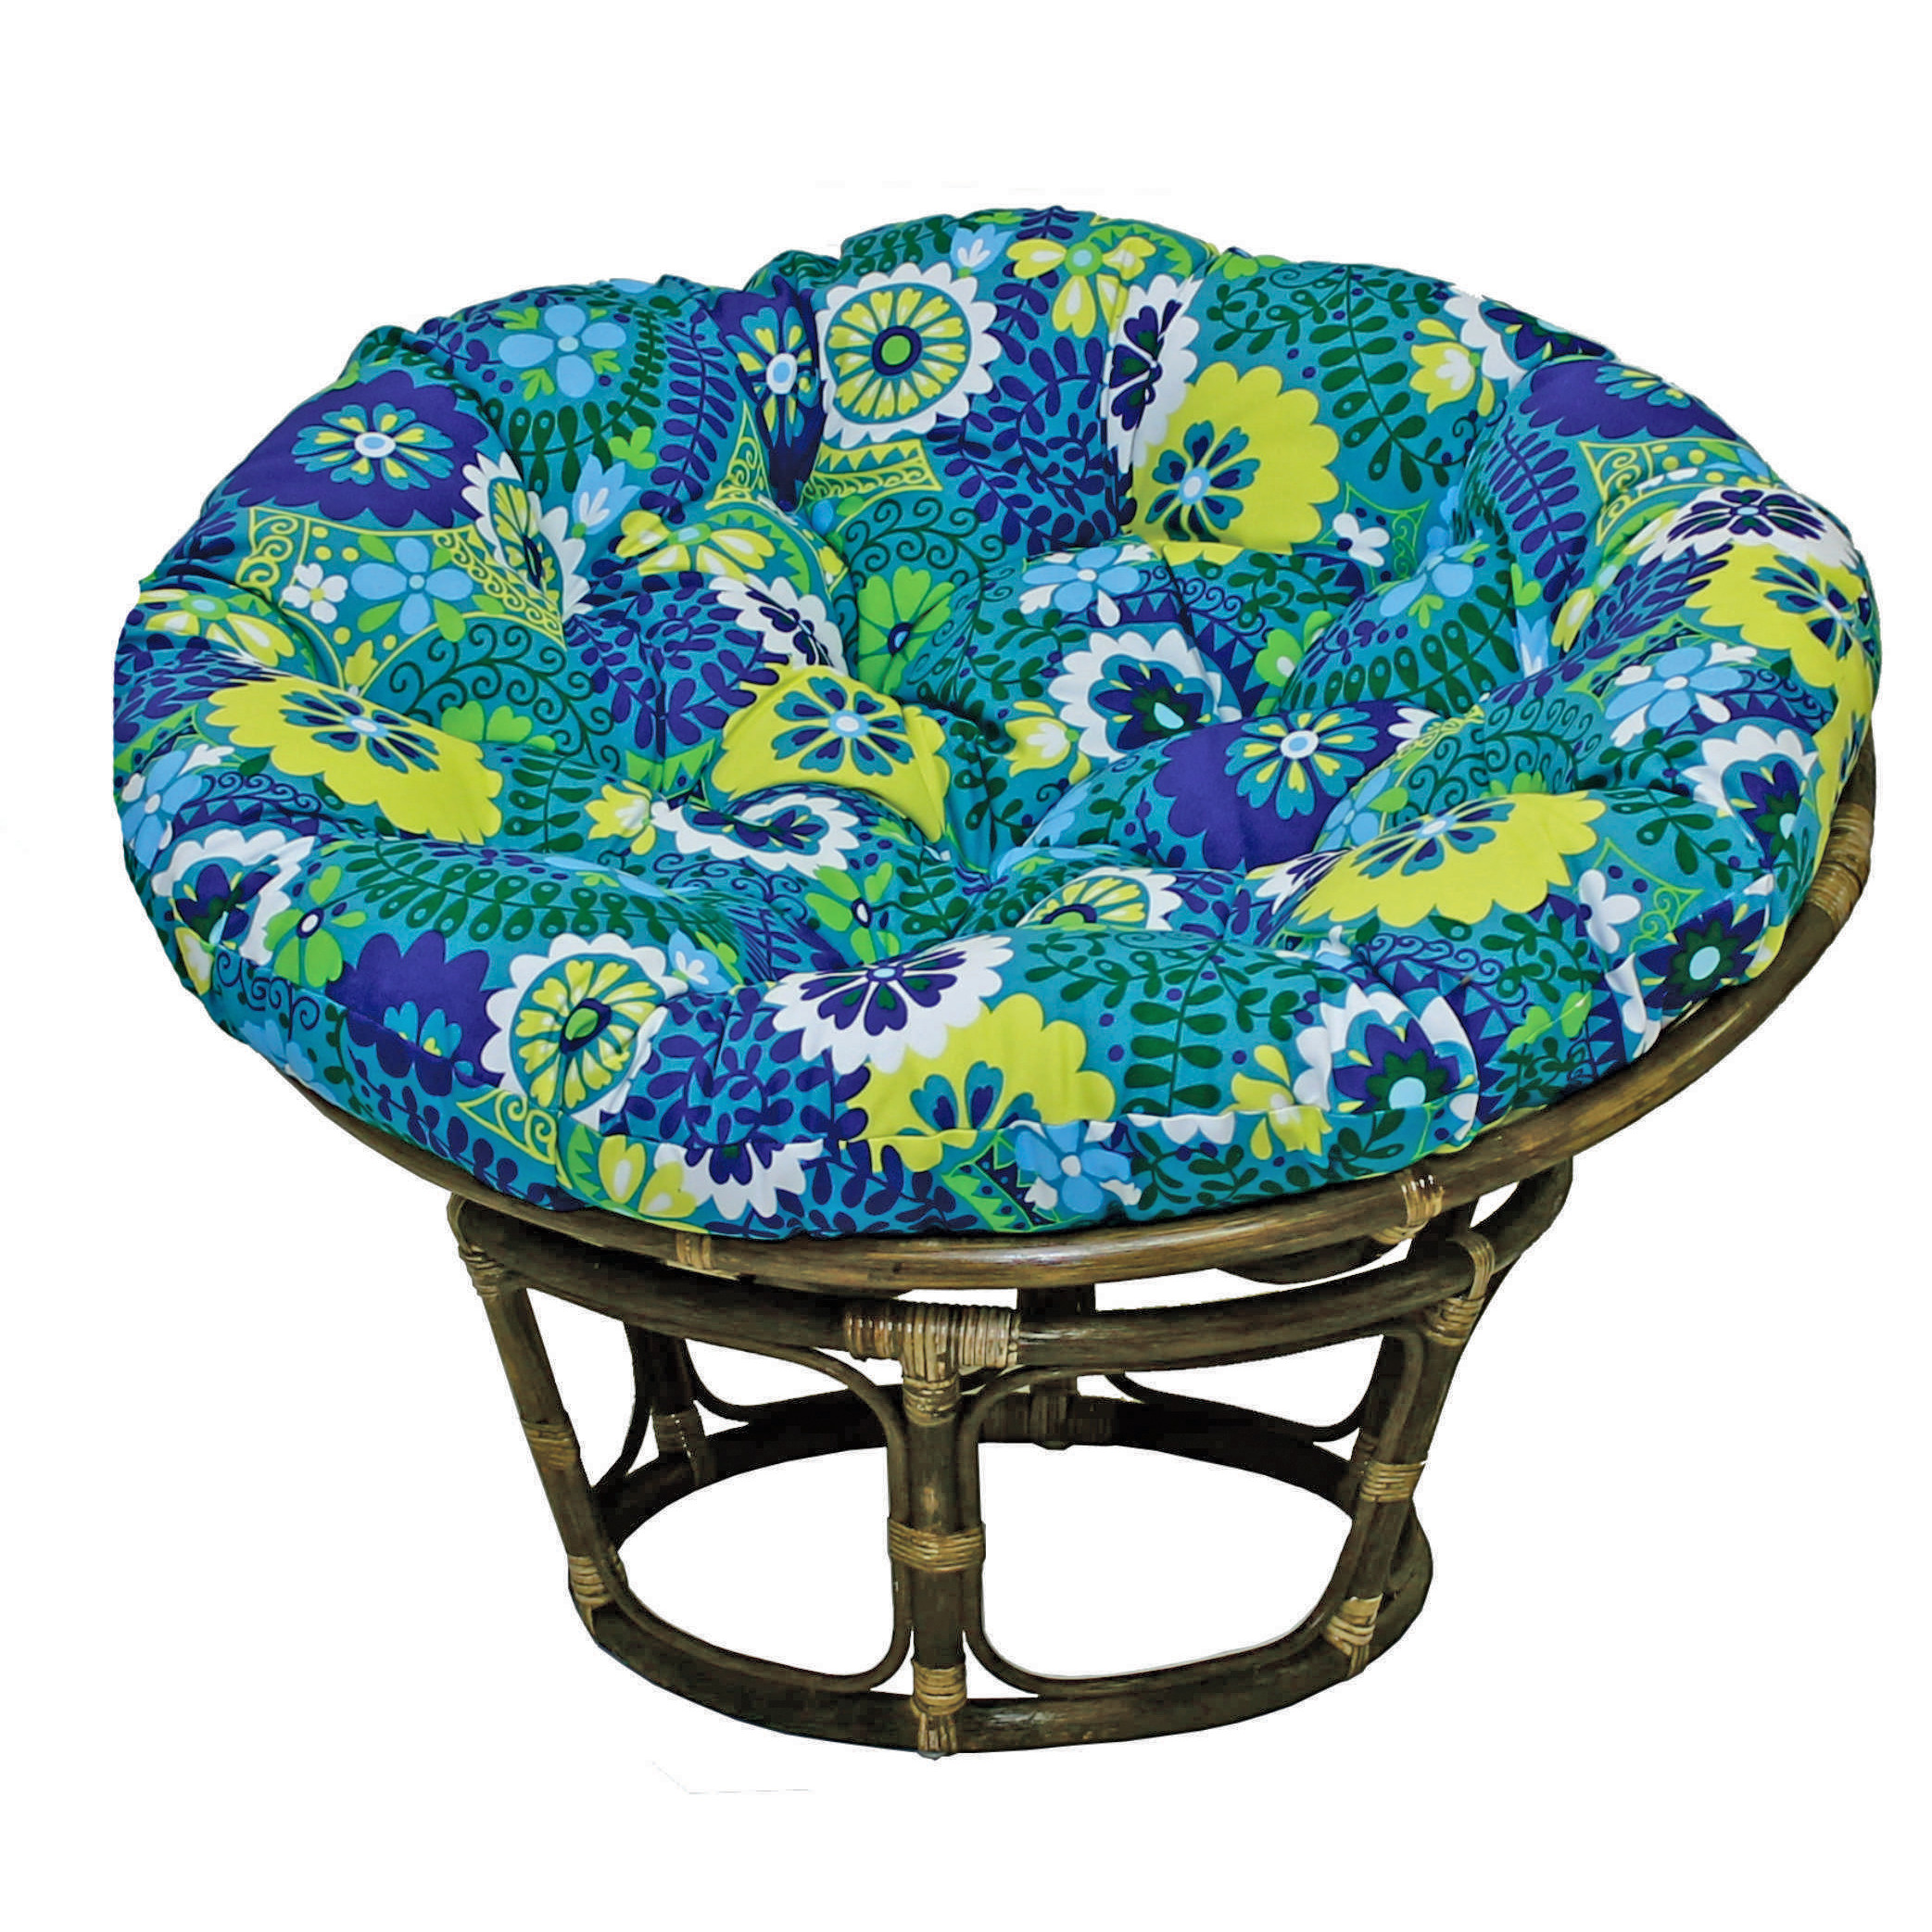 Papasan Cushion | Papasan Chair Target | Pier One Cushions